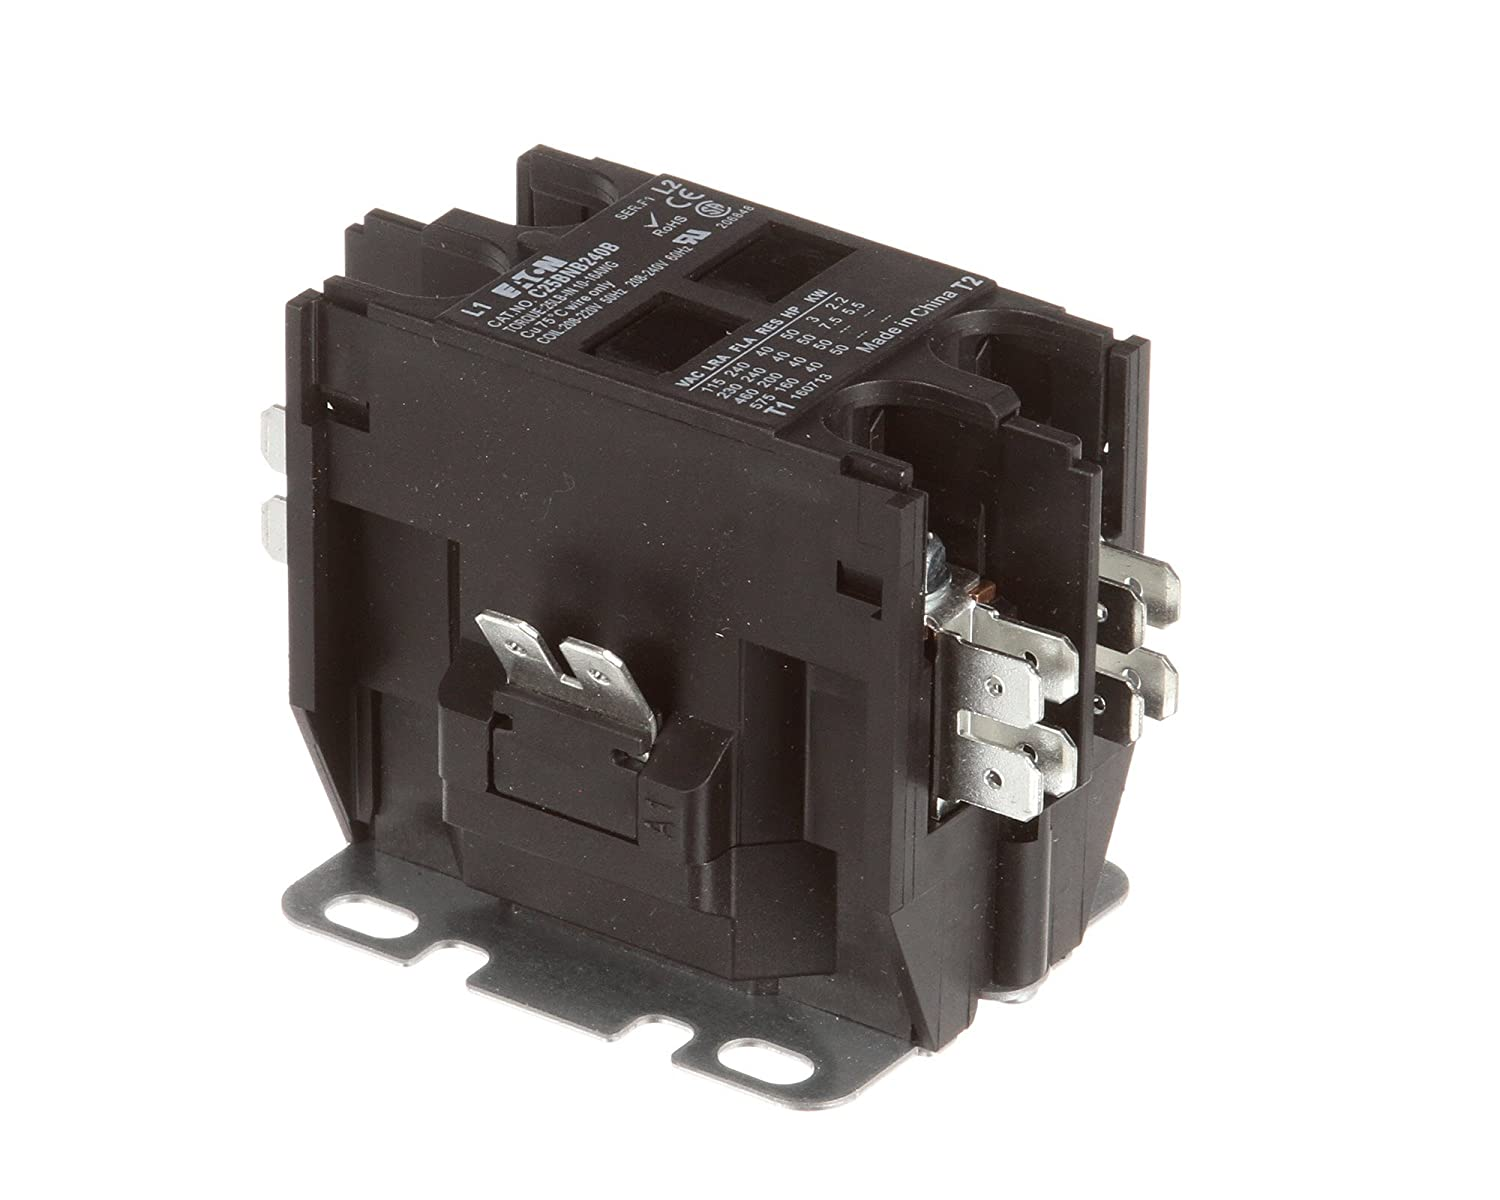 Champion - Moyer Diebel 116168 Contactor, Two Pole, 40 A, 240V